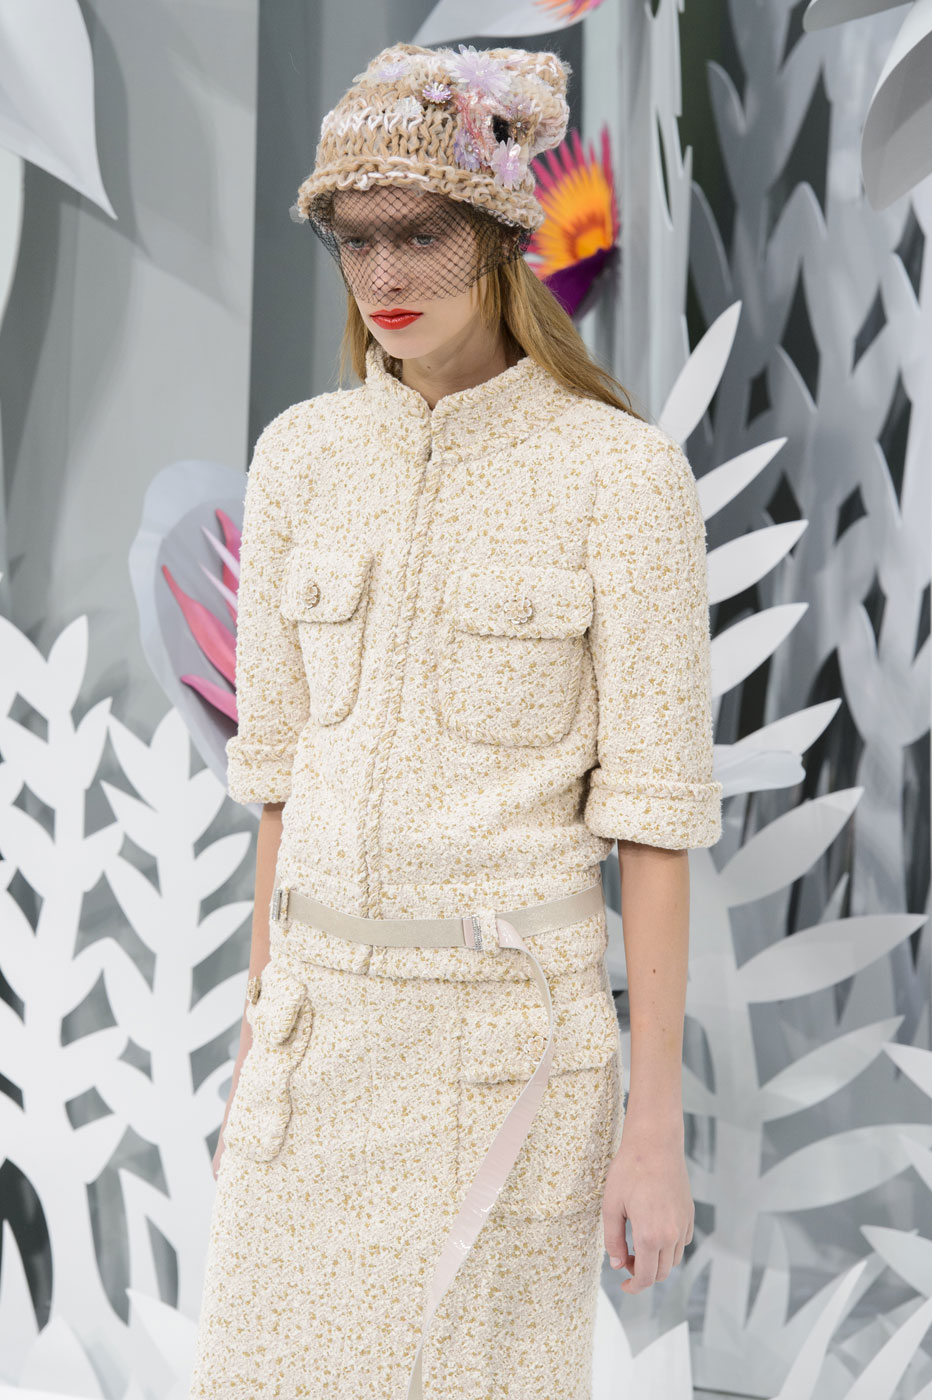 Chanel-fashion-runway-show-haute-couture-paris-spring-summer-2015-the-impression-047